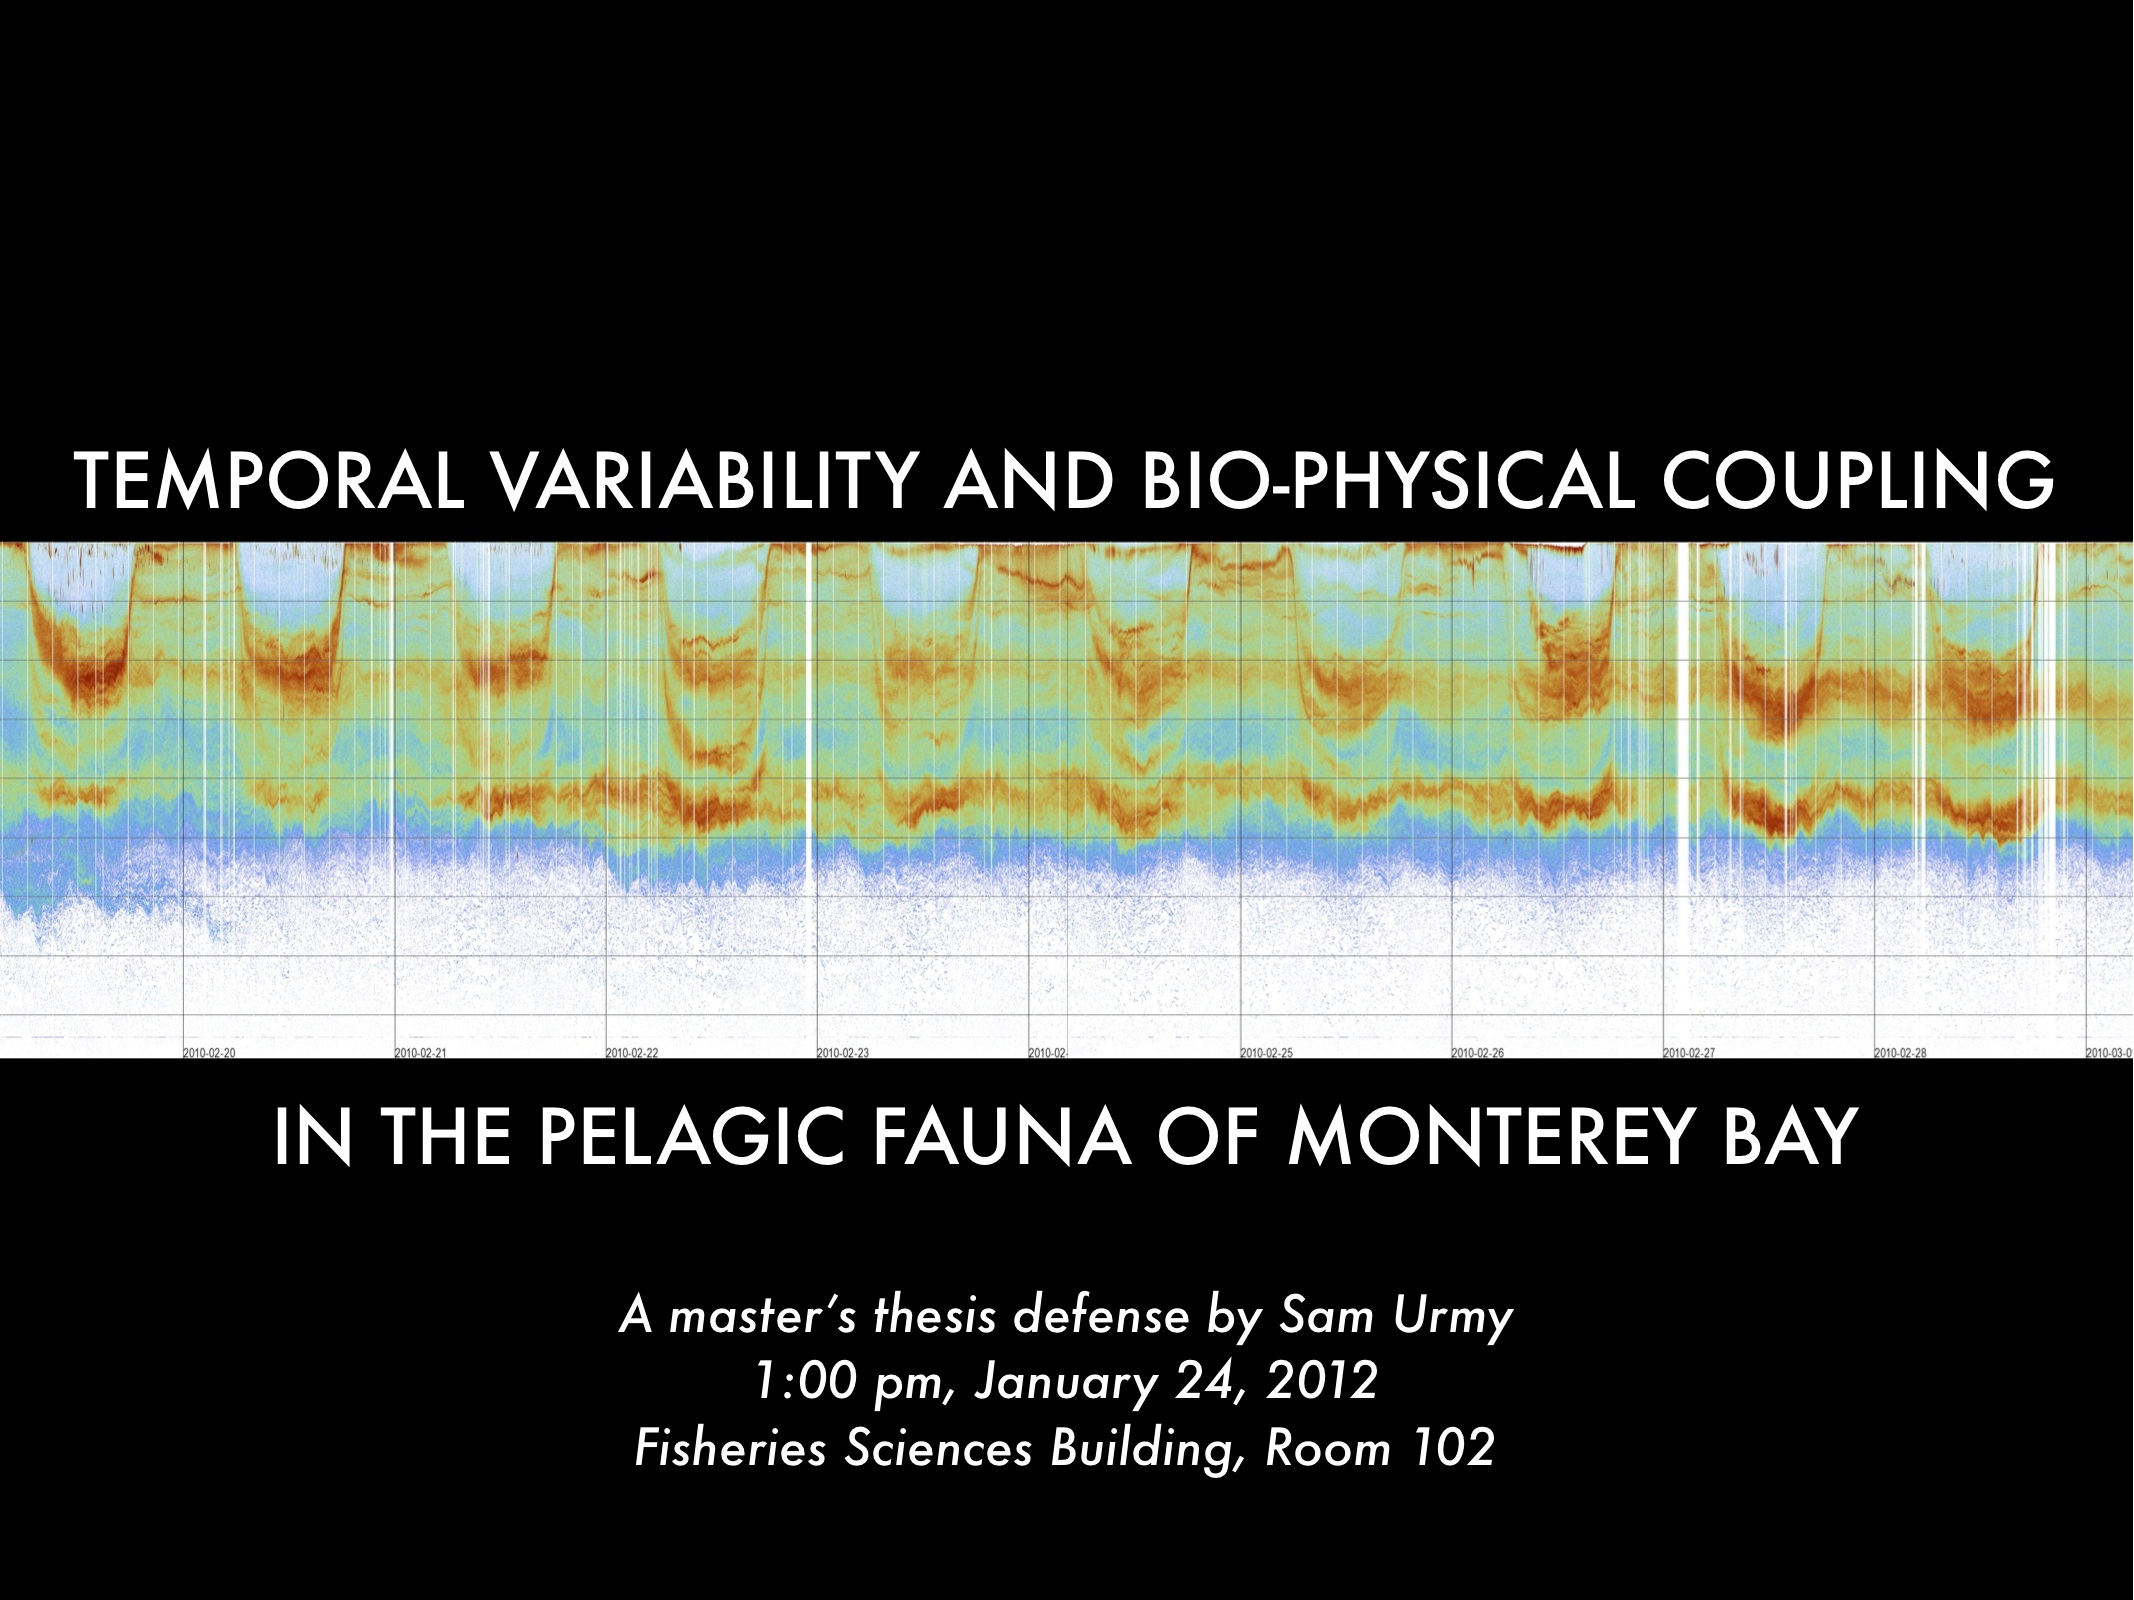 Temporal variability and bio-physical coupling in the pelagic fauna of Monterey Bay